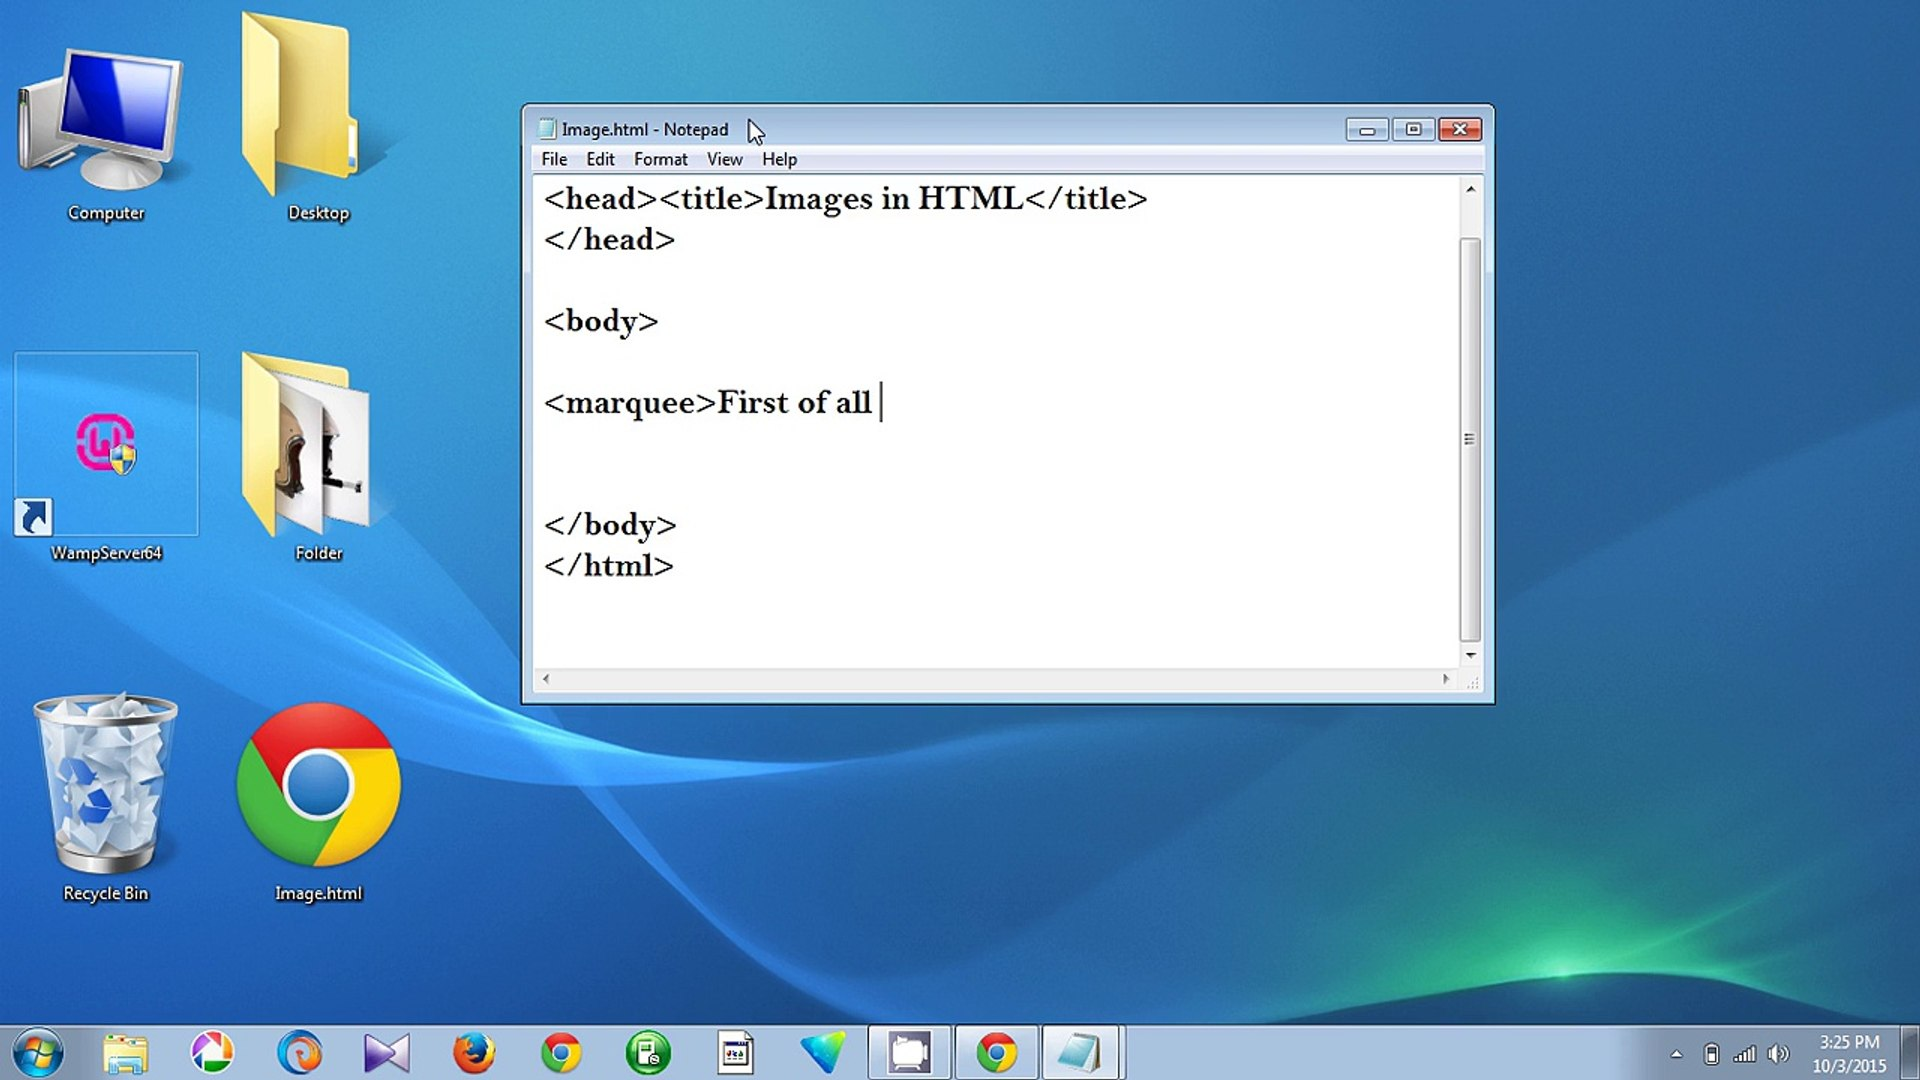 How To Insert Image In HTML Using Notepad - Quick and Easy